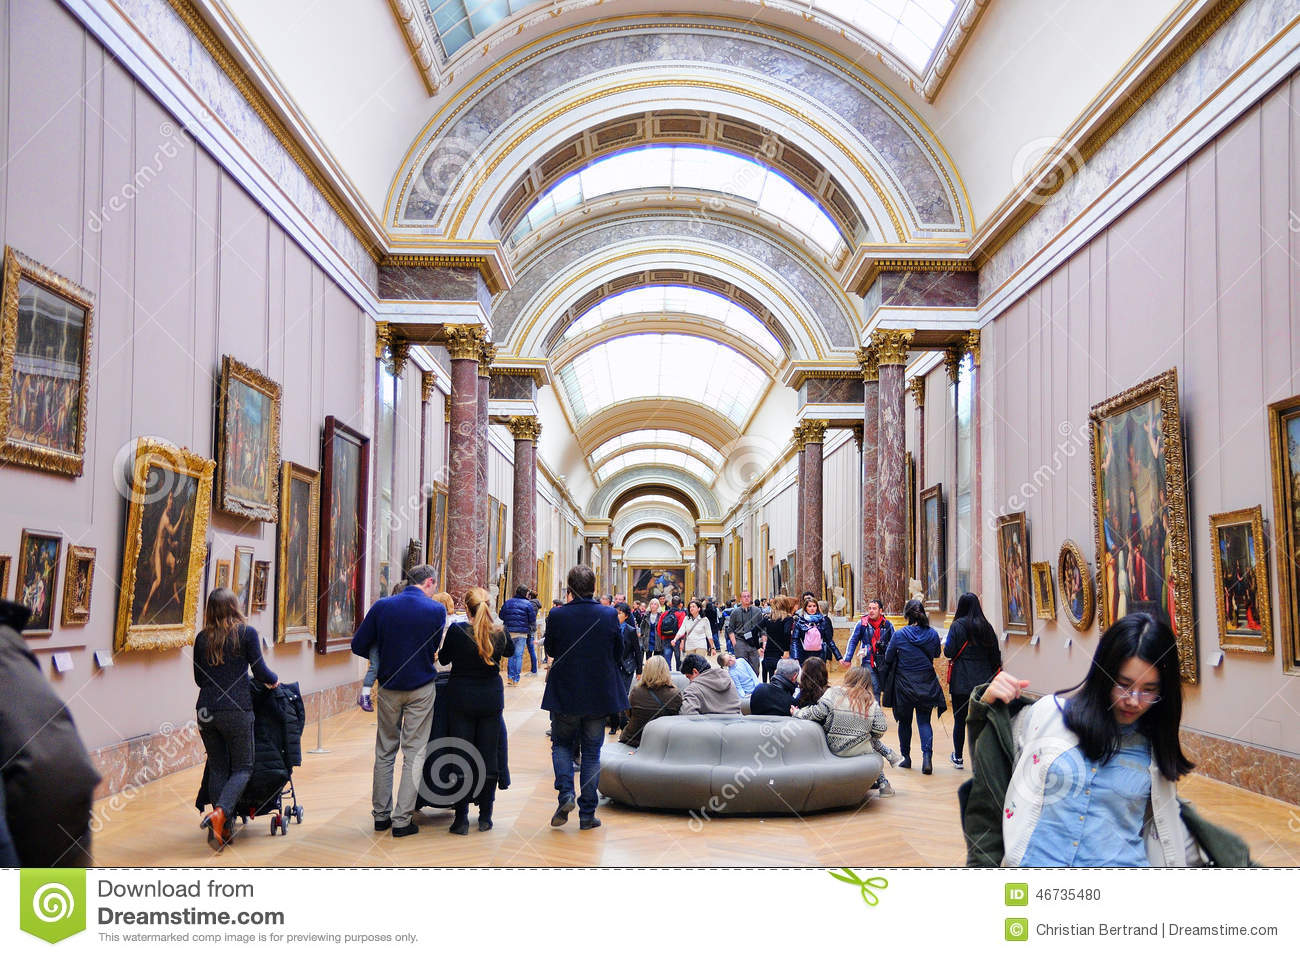 https://thumbs.dreamstime.com/z/povos-dentro-do-museu-do-louvre-musee-du-louvre-46735480.jpg